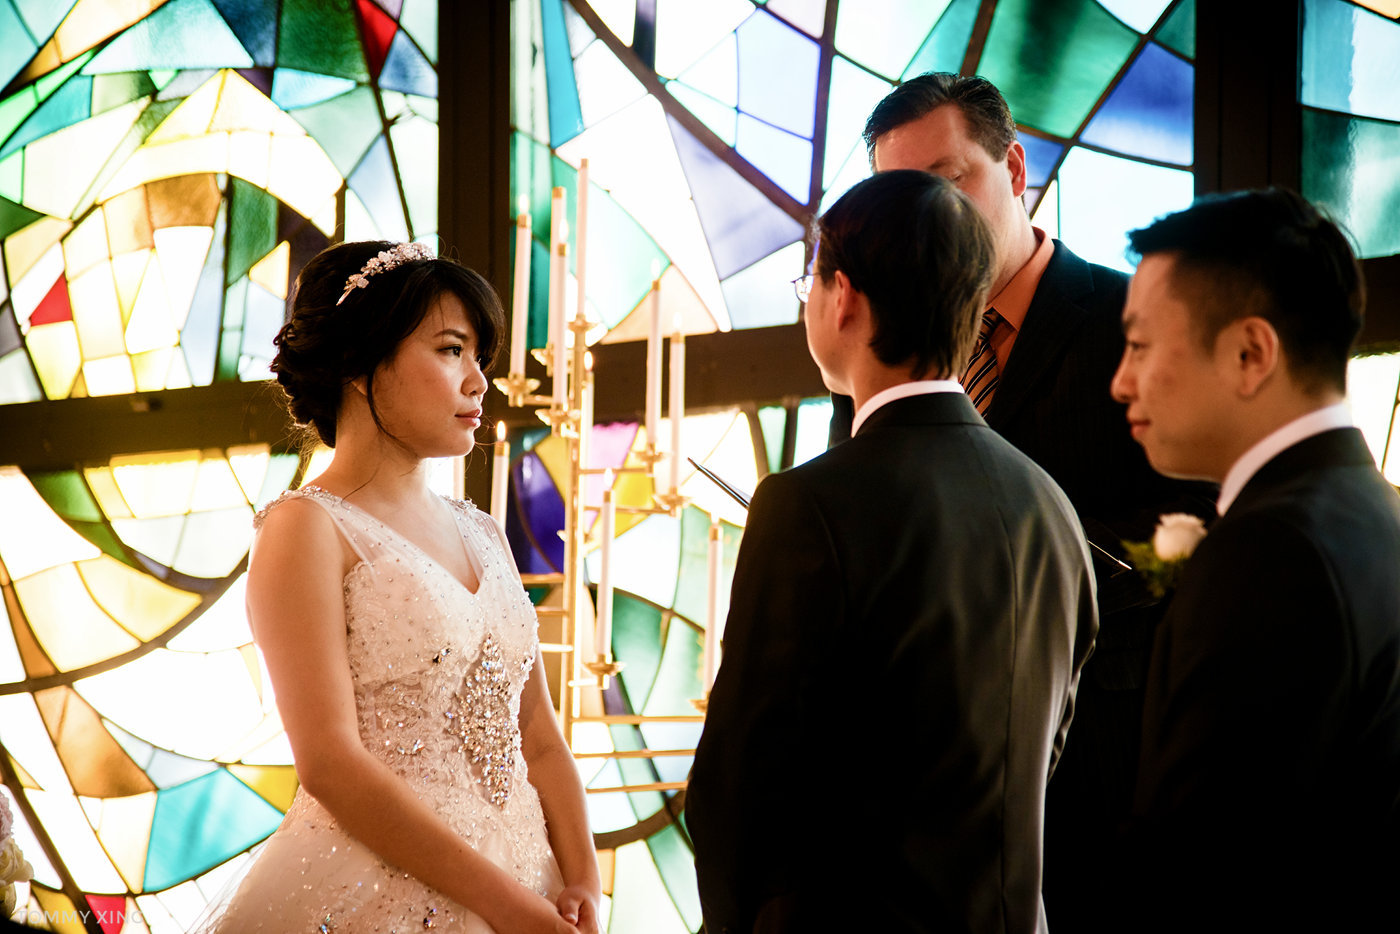 Qinglu Meng & Daozheng Chen Wedding Slideshow-121-E.JPG